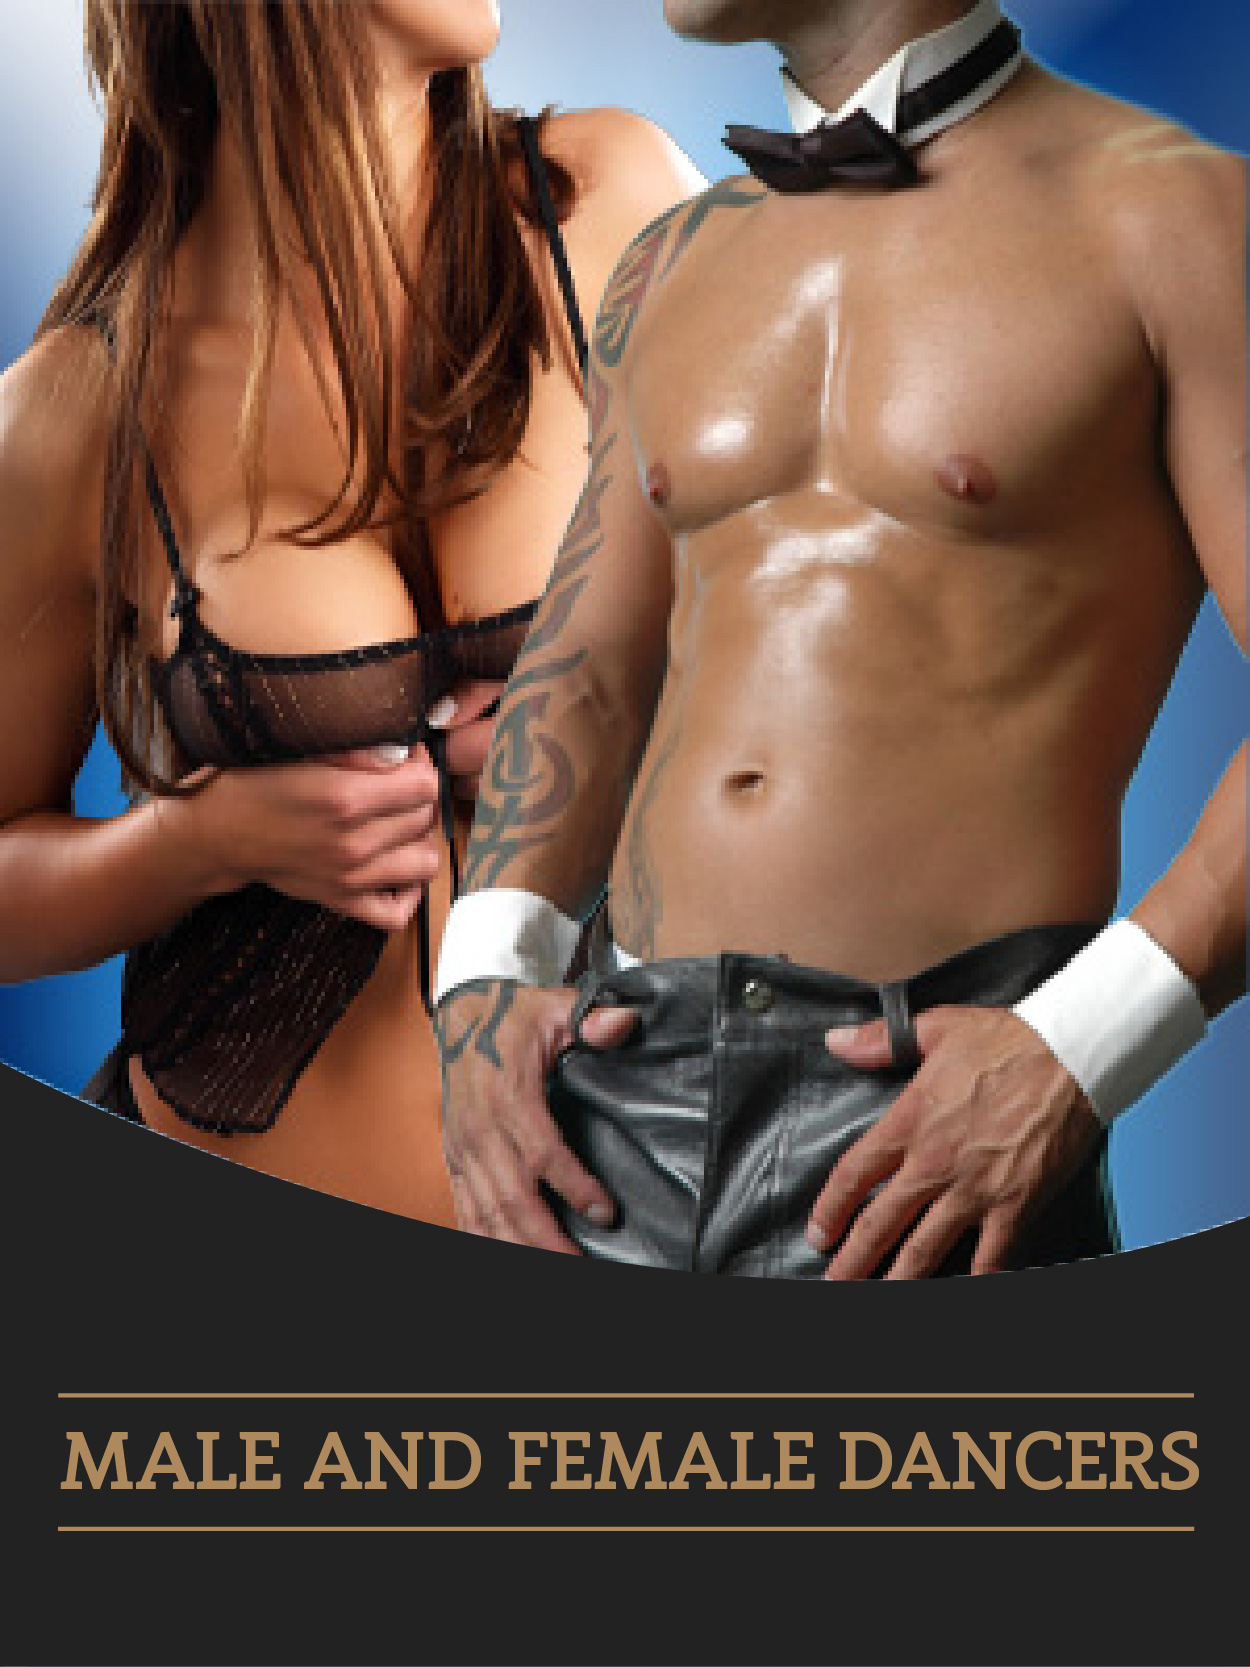 Male-female-dancer-01-01